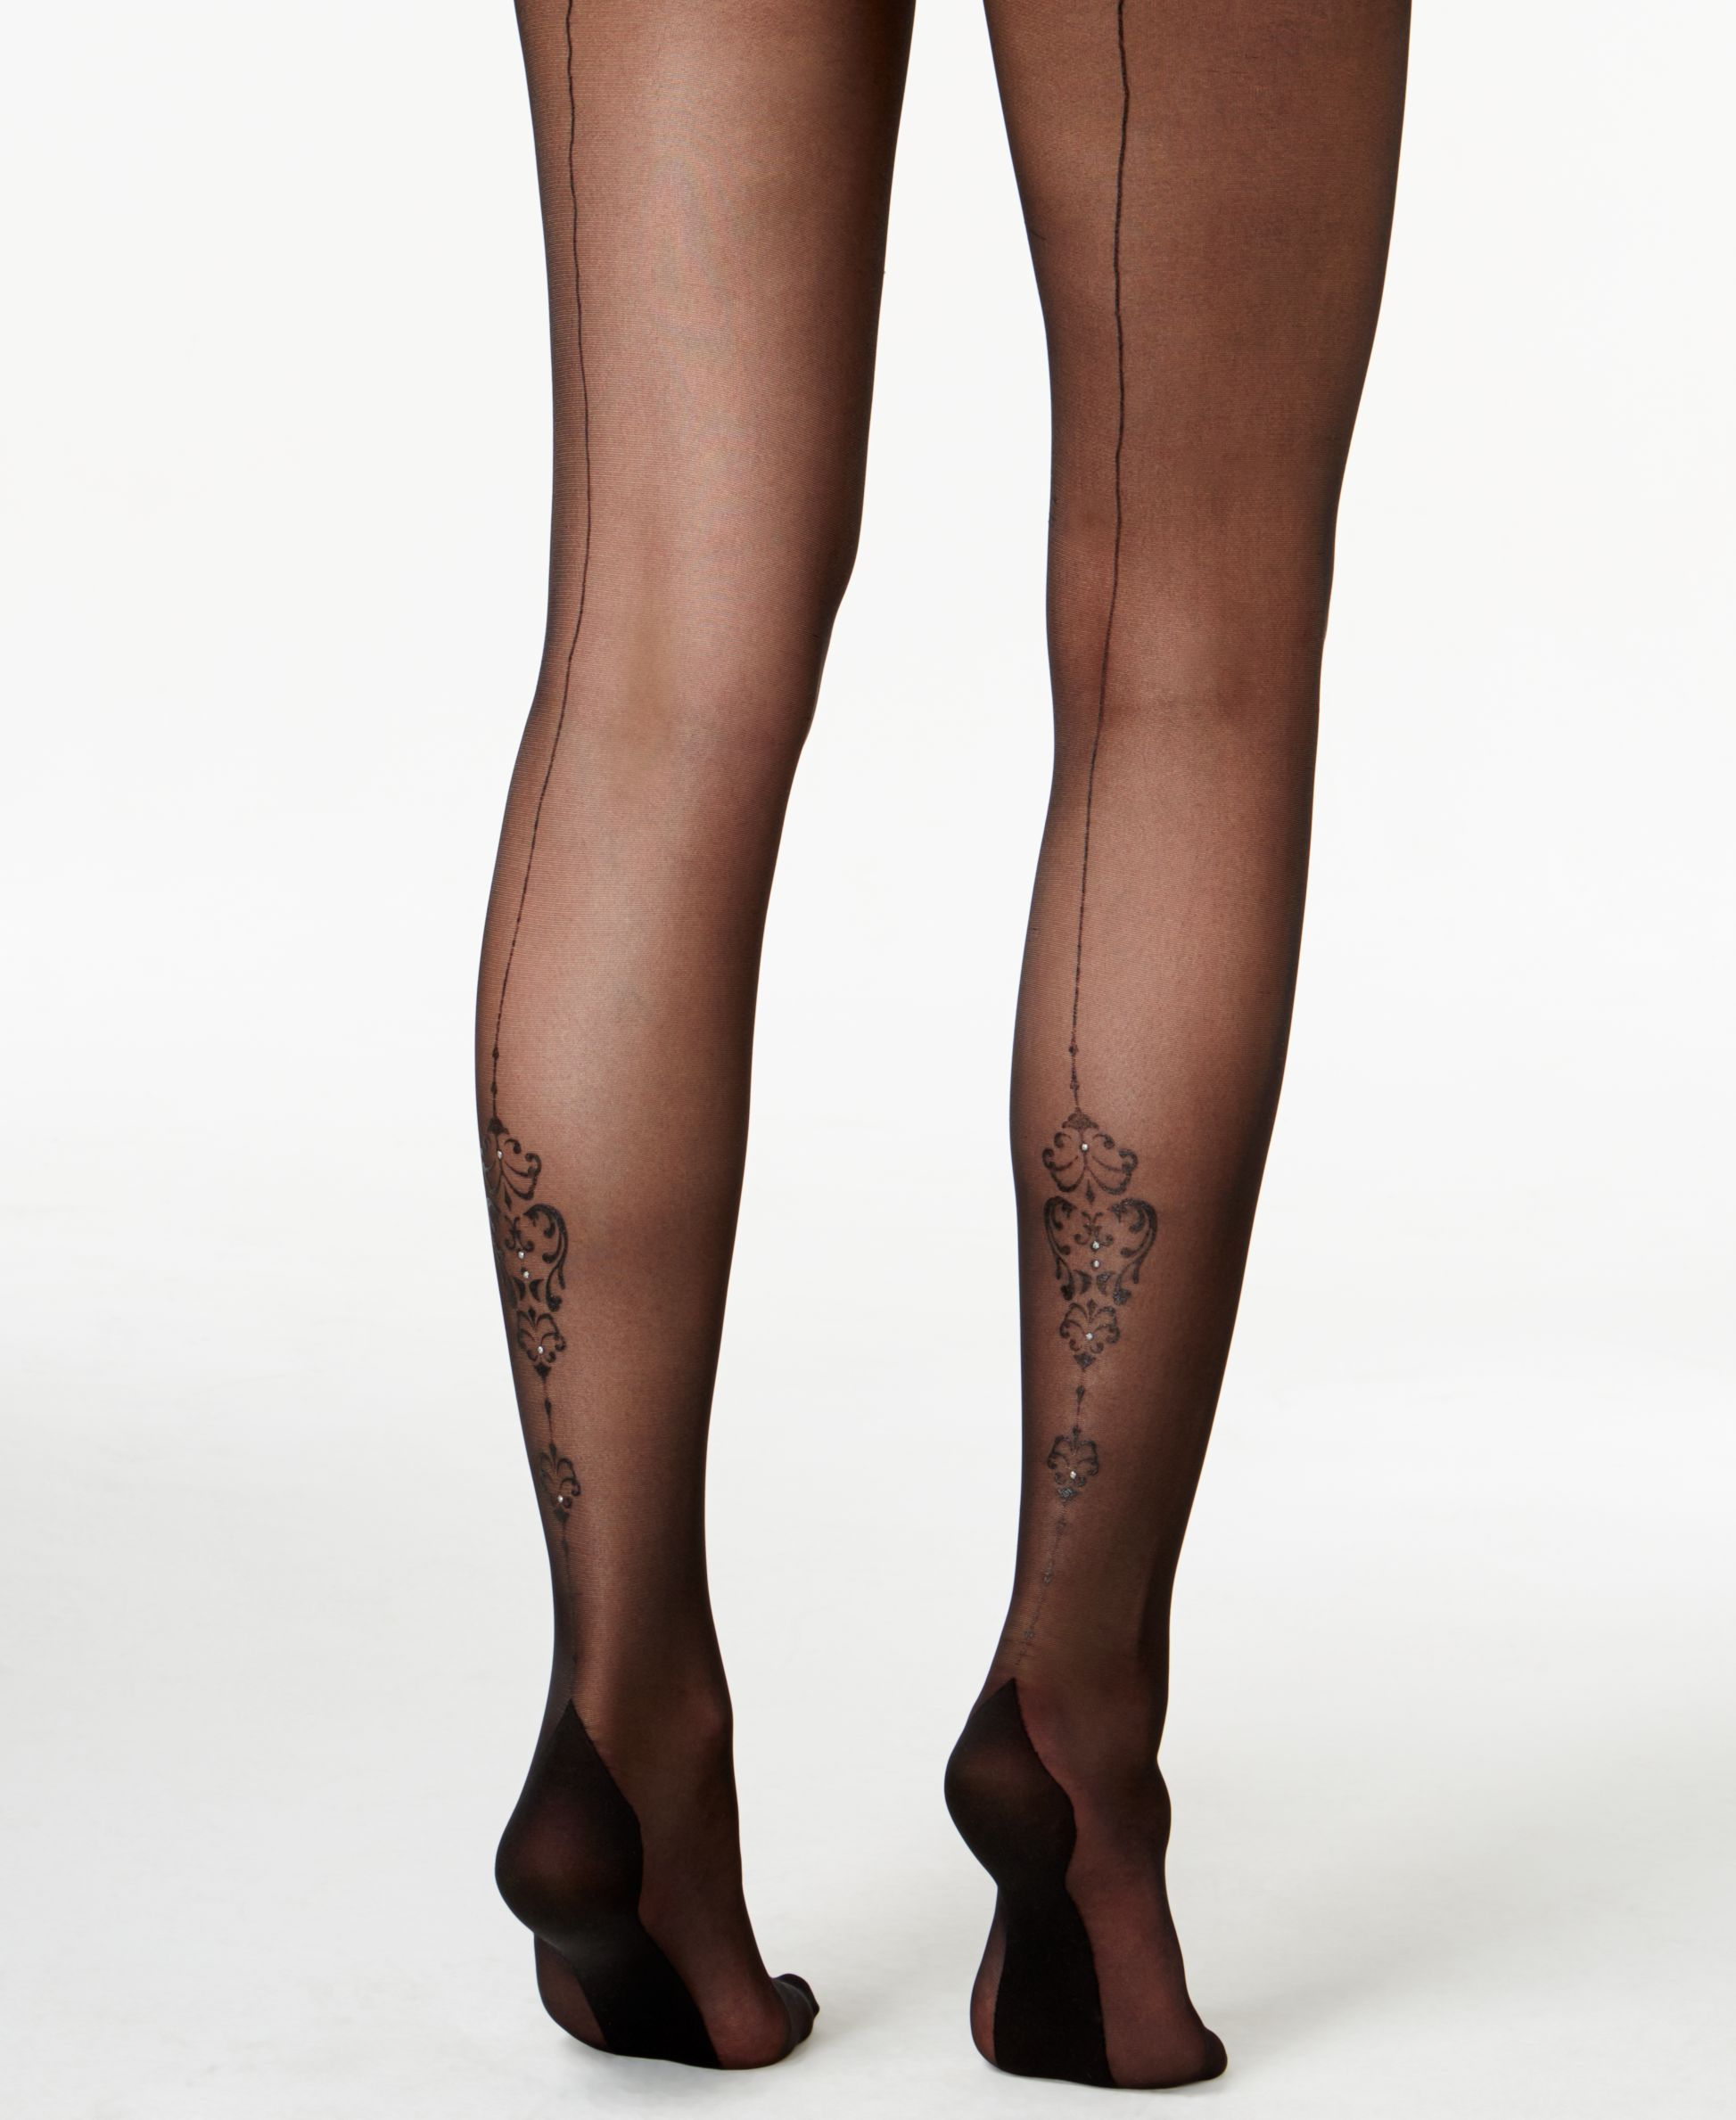 Pretty Polly Diamond Mesh Tights With Back Seam In Black By Pretty Polly